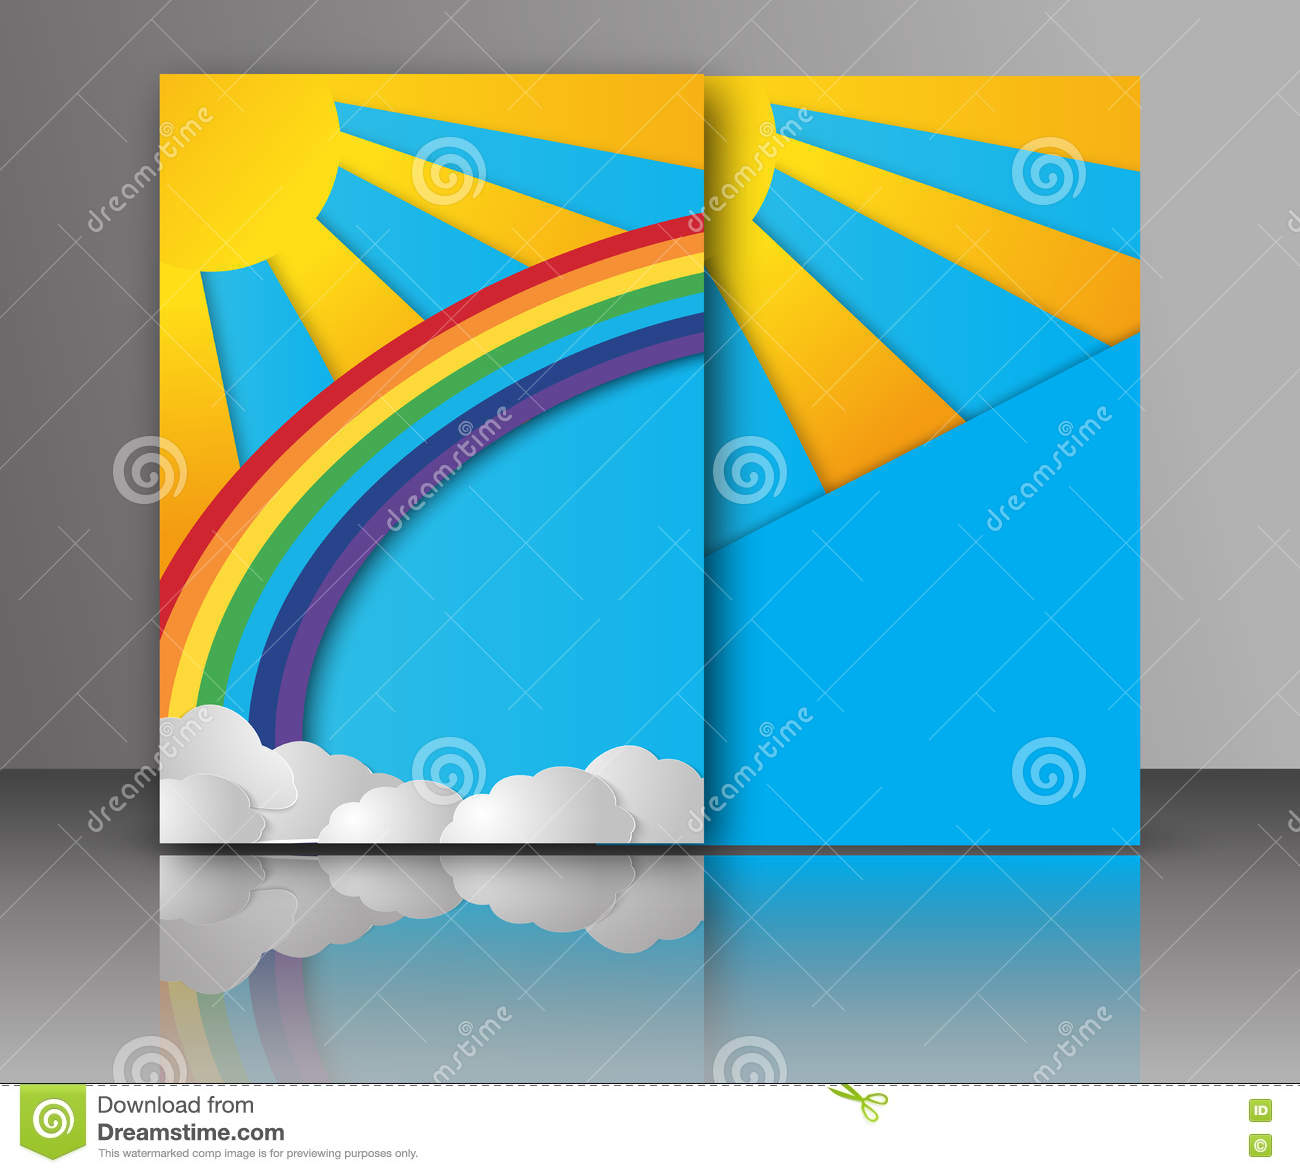 Summer sun with clouds and rainbow background. Paper cut style